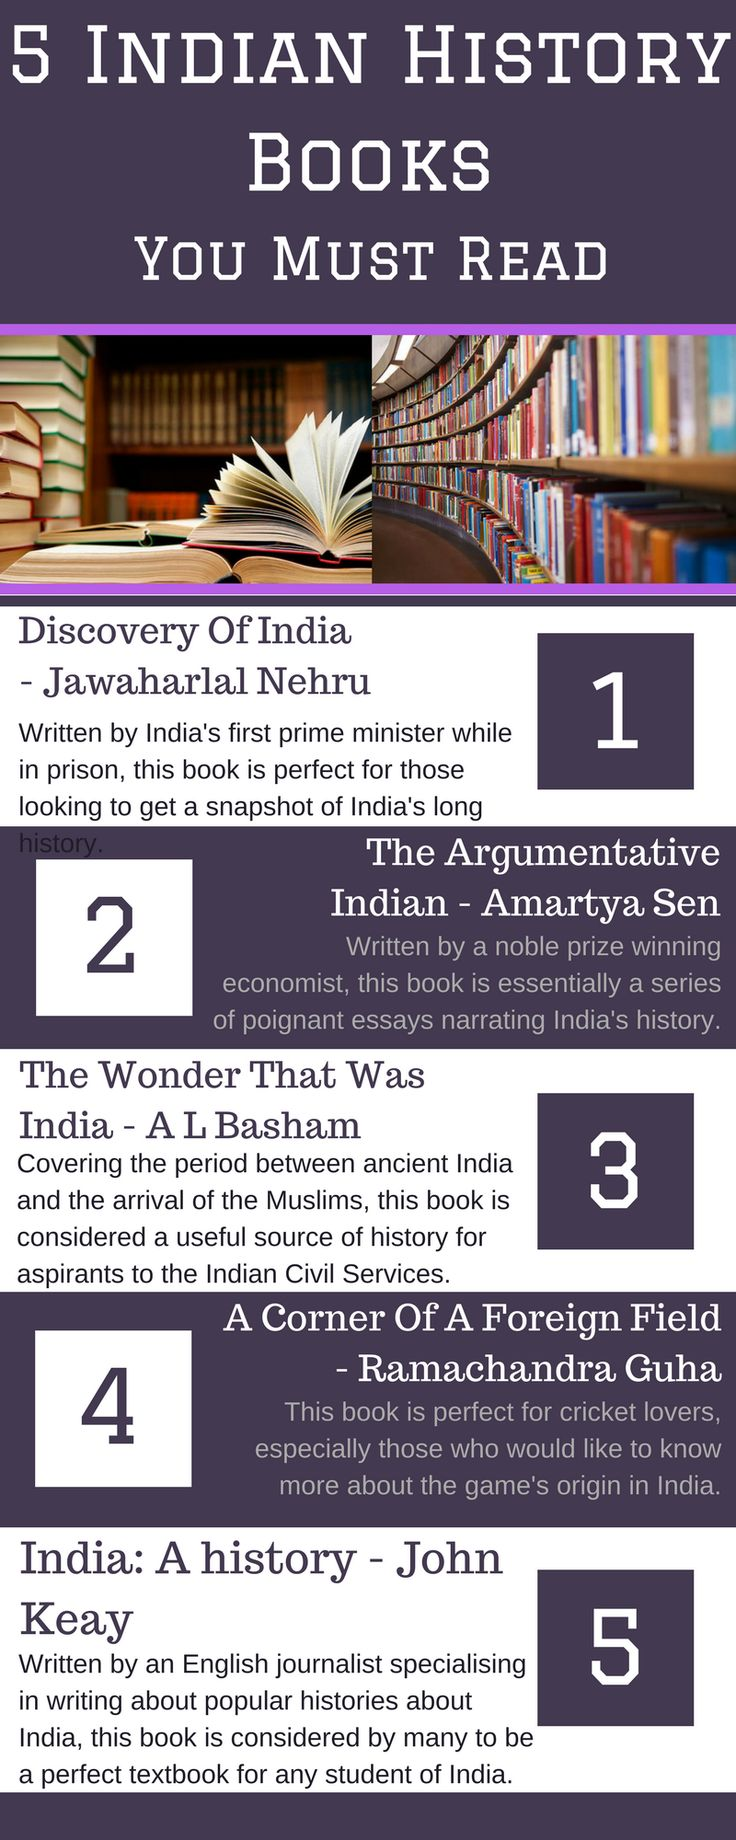 Learn about some of the best Indian Literature there is to read in this infographic. View the original infographic here: https://www.canva.com/design/DACVMLdiHDA/bnQbxri27uDyaNzbQQm6BA/view?utm_content=DACVMLdiHDA&utm_campaign=designshare&utm_medium=link&utm_source=sharebutton  Also, to find out more about Indian history books, visit http://www.motilalbooks.com/  Contact Us: 367 High Street,  London Colney,  St. Albans,  Hertforshire,  AL2 1EA